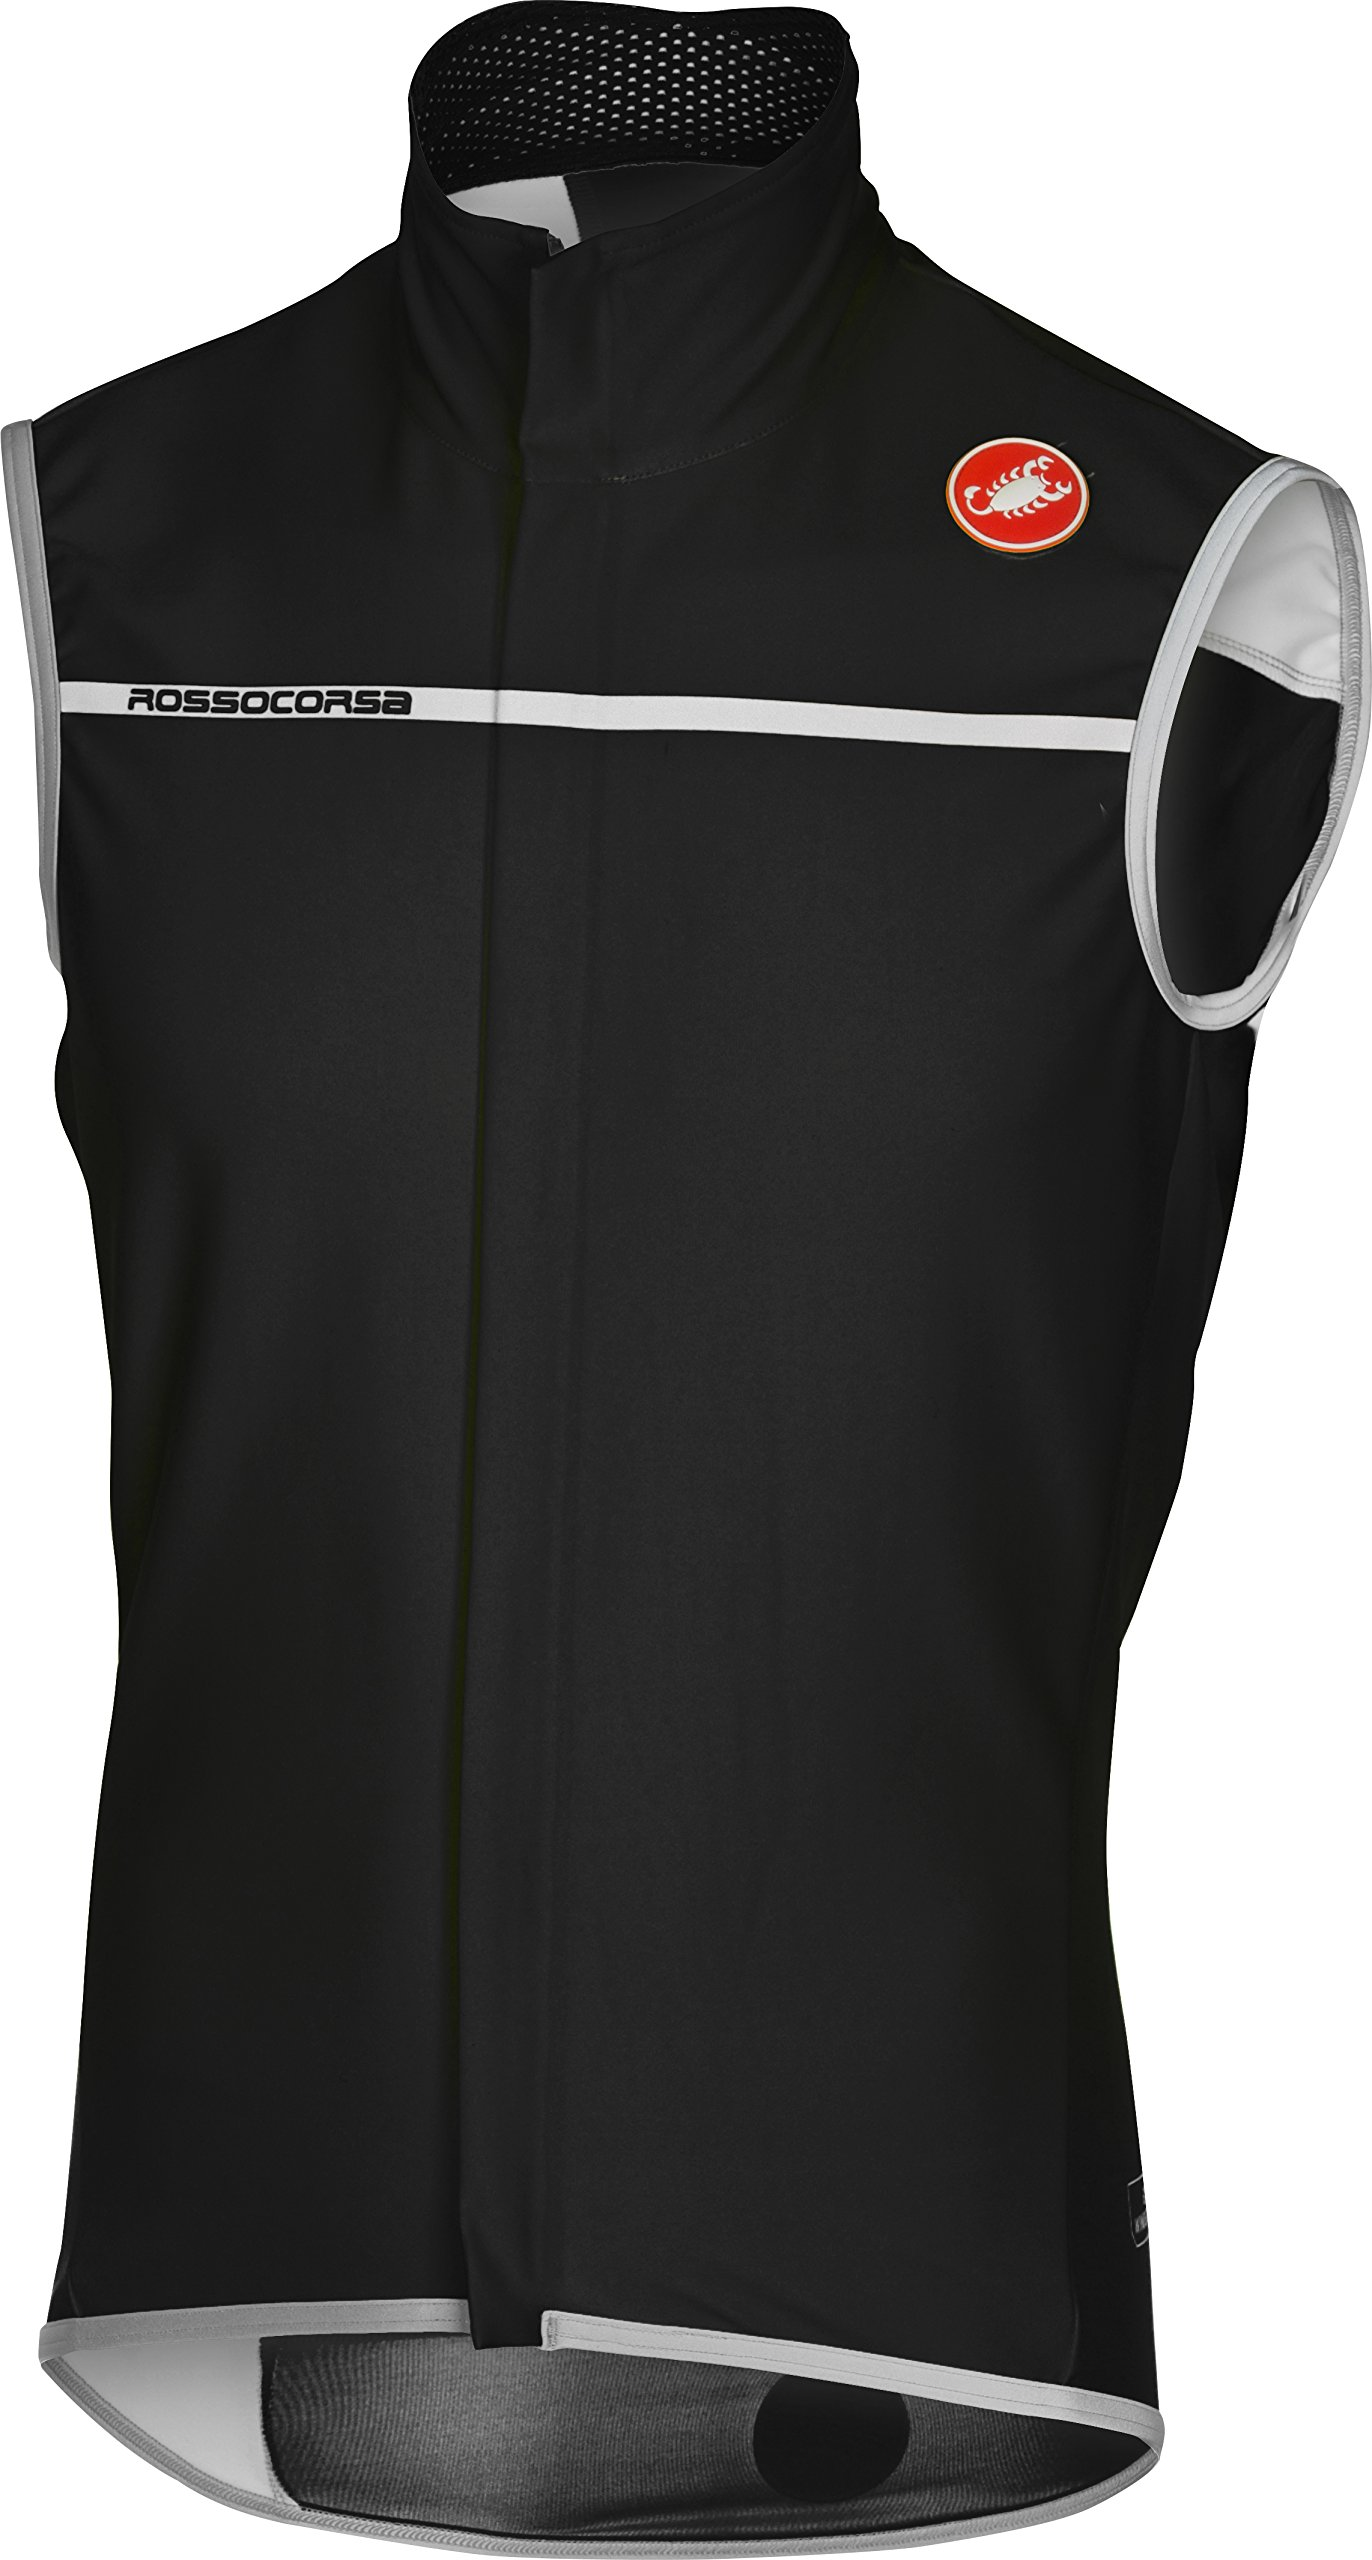 Castelli Perfetto Vest - Men's Light Black, M by Castelli